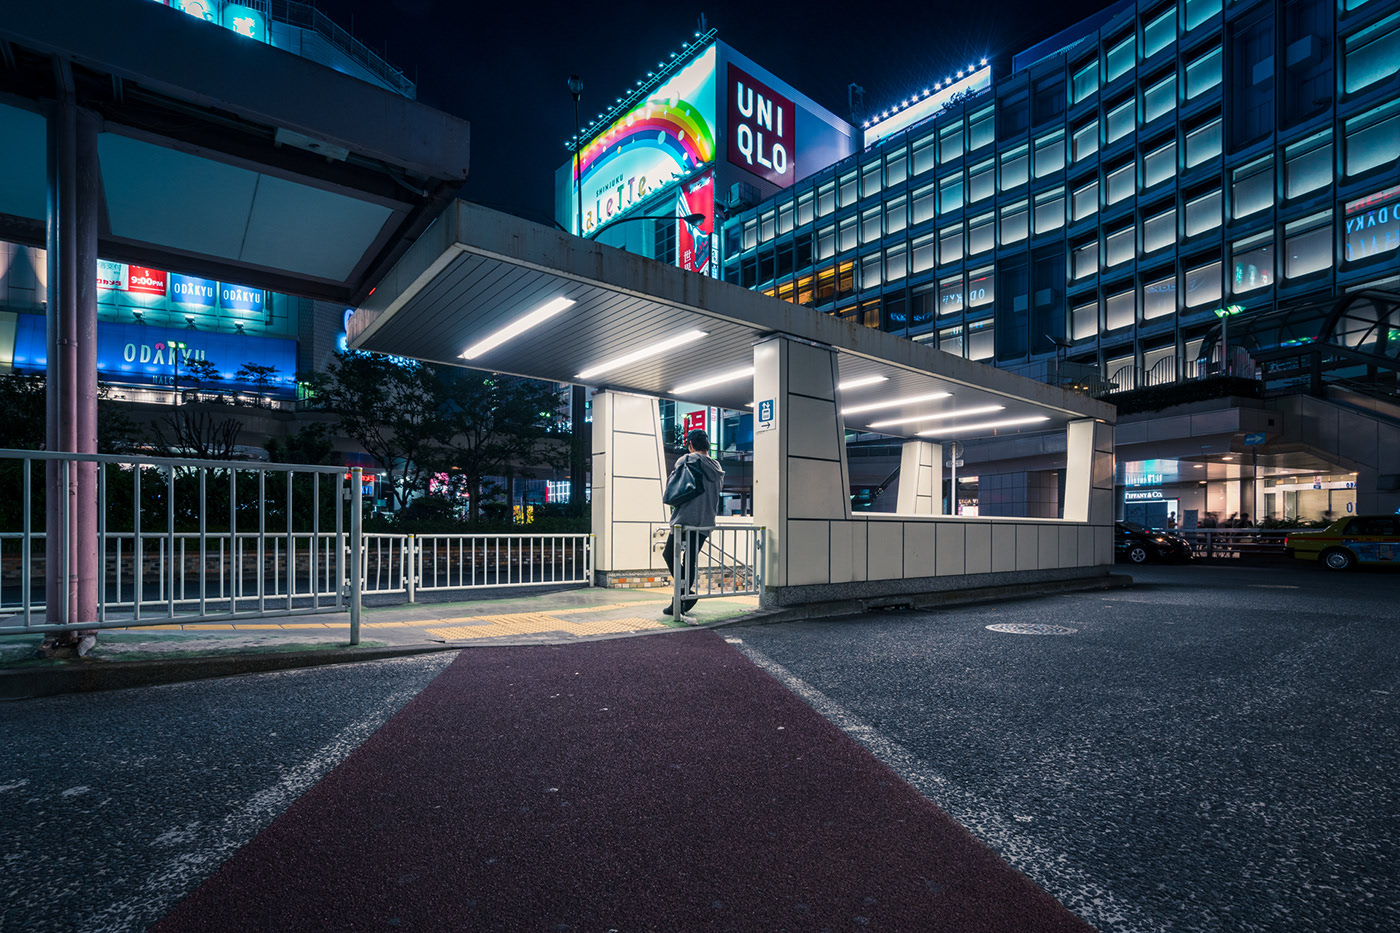 night photography city bus stop by alessandro zanoni